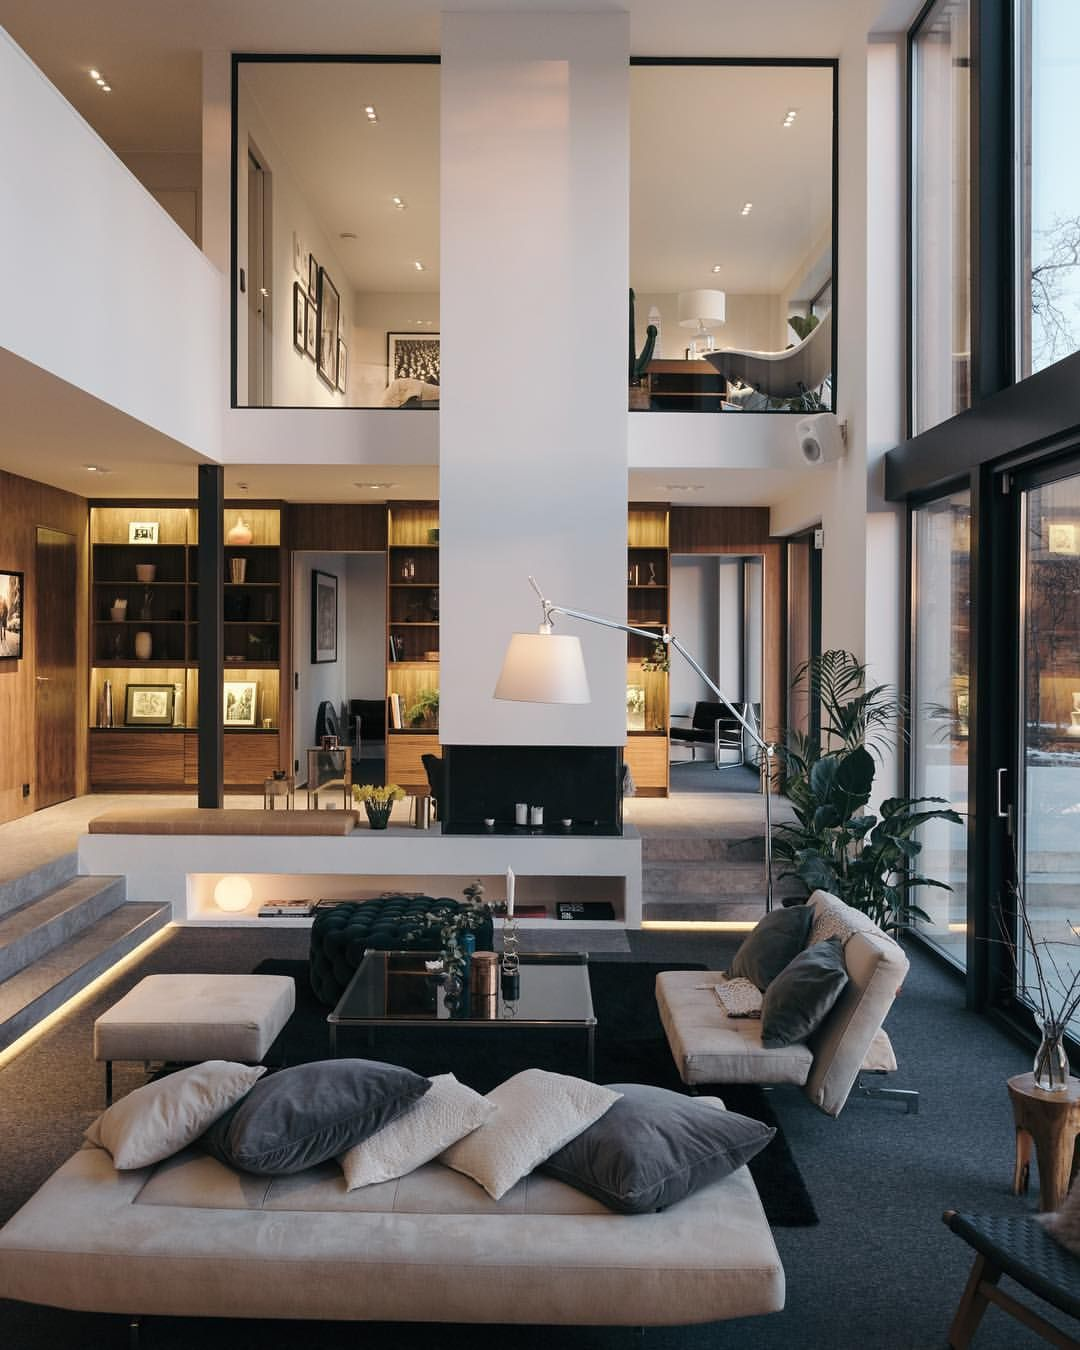 Luxury House Interior Living Room: Haus Innenarchitektur